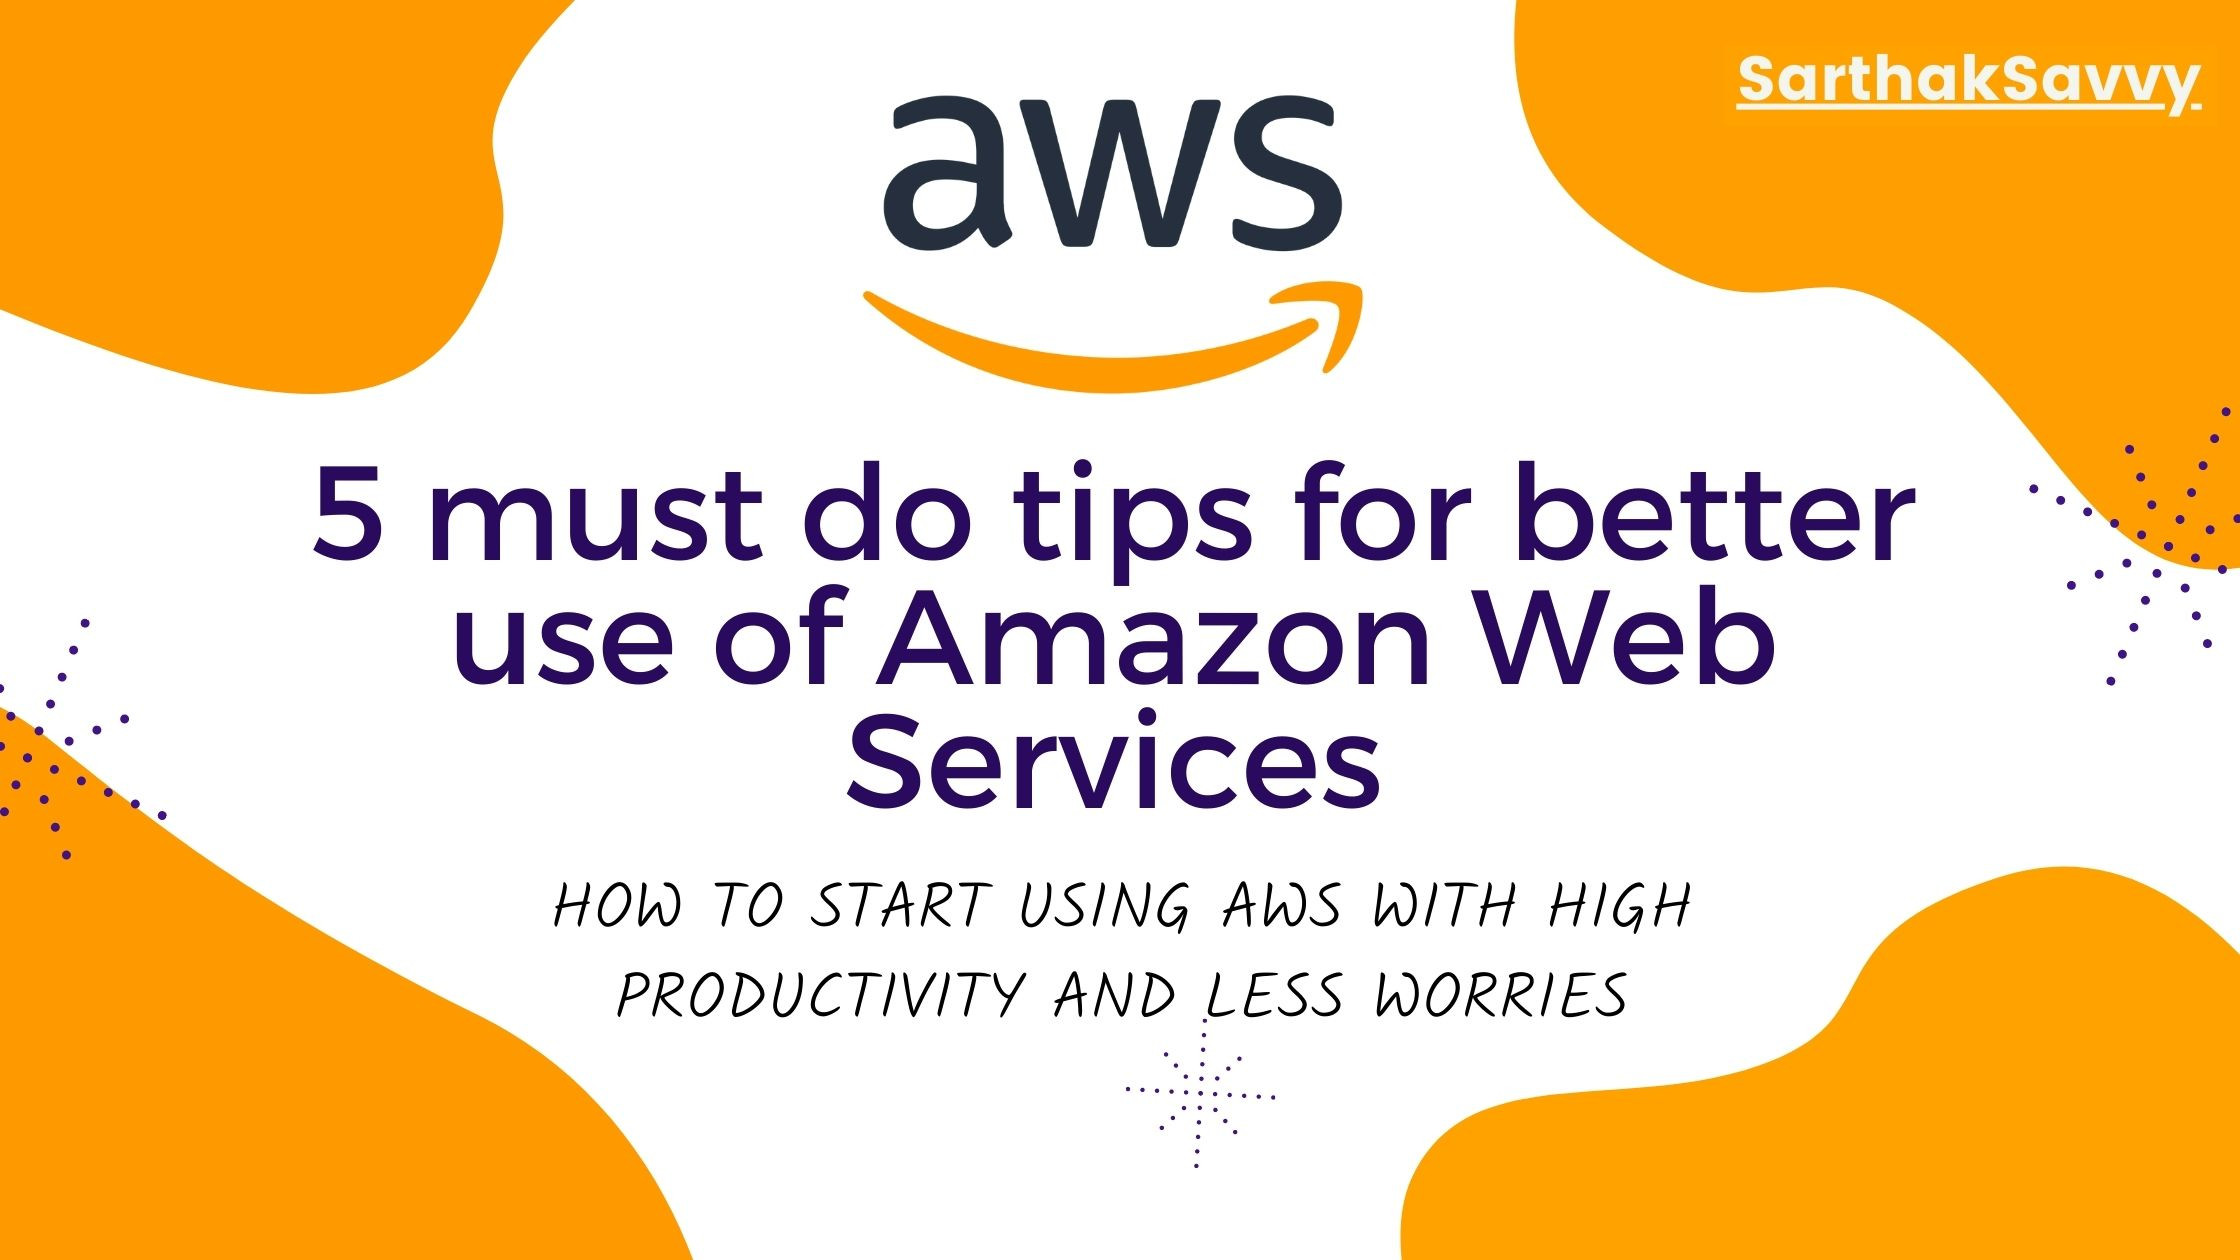 5 must do tips for better use of Amazon Web Services